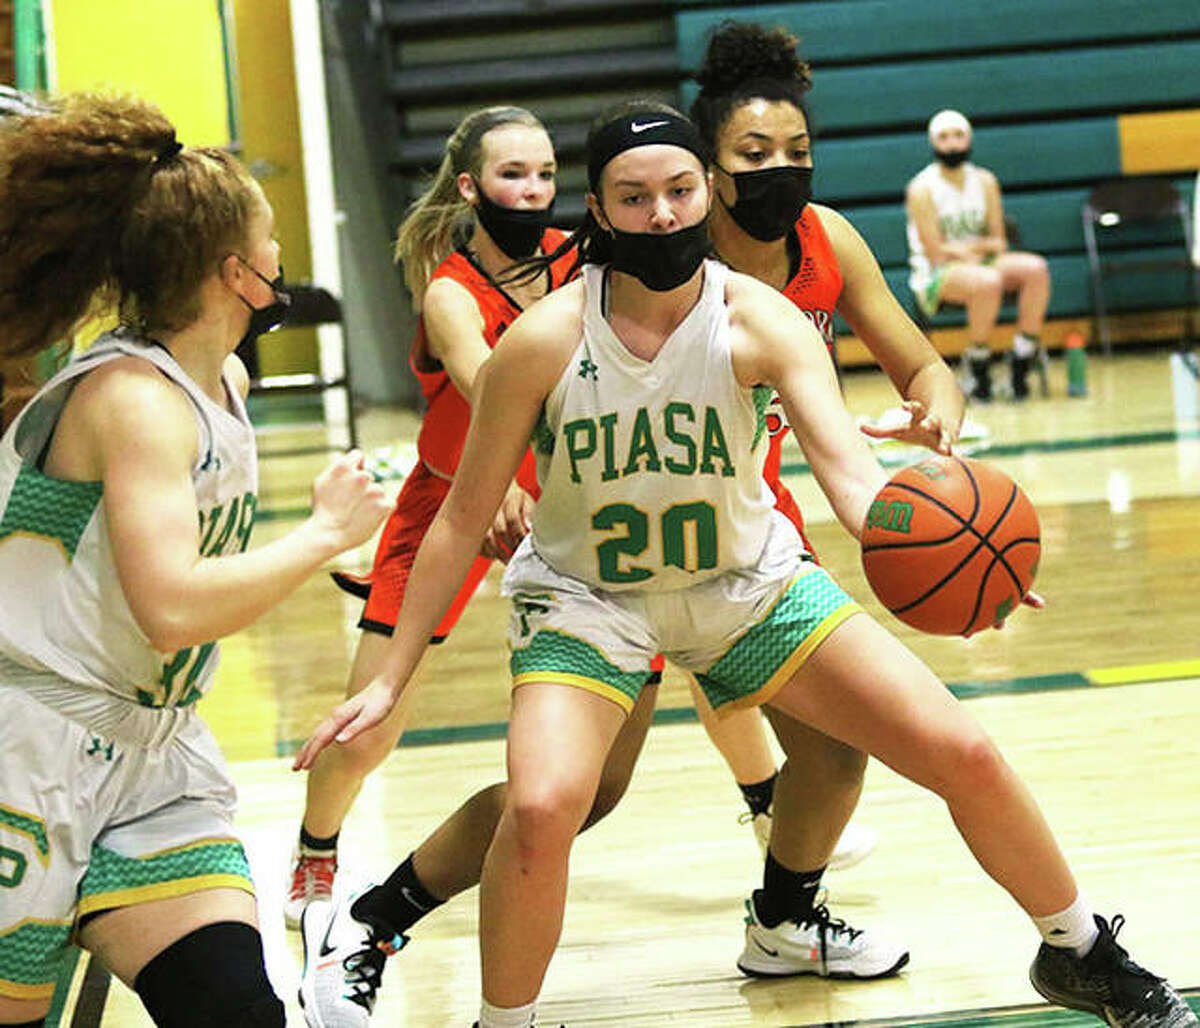 Southwestern senior Korrie Hopkins (20) taps a pass back to Southwestern senior Rylee Smith (left) after she inbounded the ball during a March 6 game against Hillsboro in Piasa. Smith and Hopkins are the 2021 Telegraph Small-Schools Girls Basketball Co-Players of the Year.